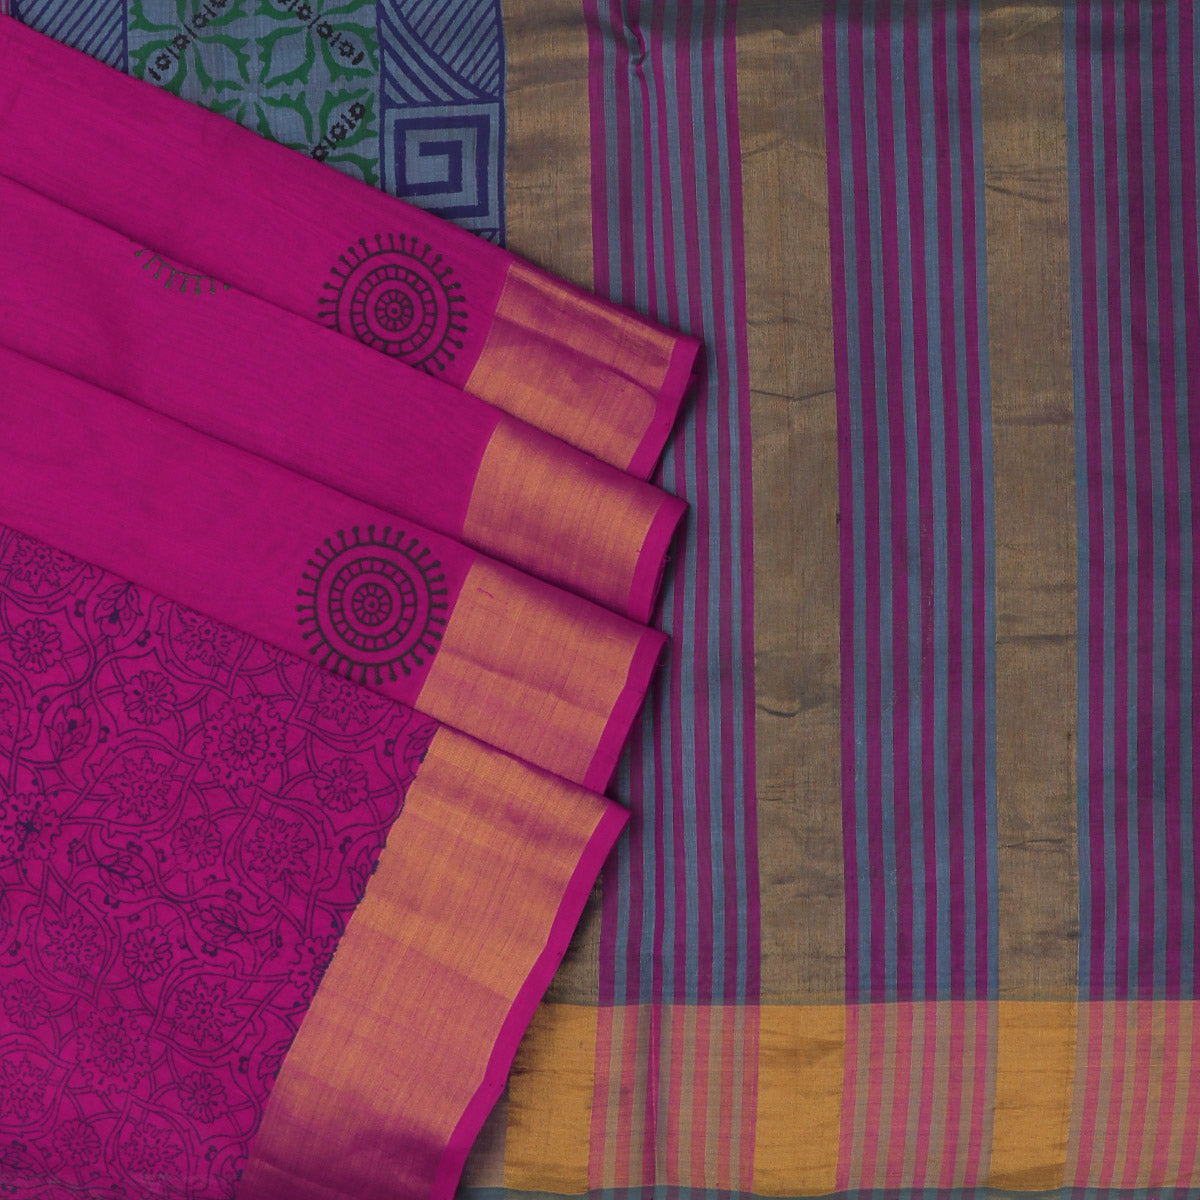 Printed Silk Cotton Saree Pink and Grey with simple zari border